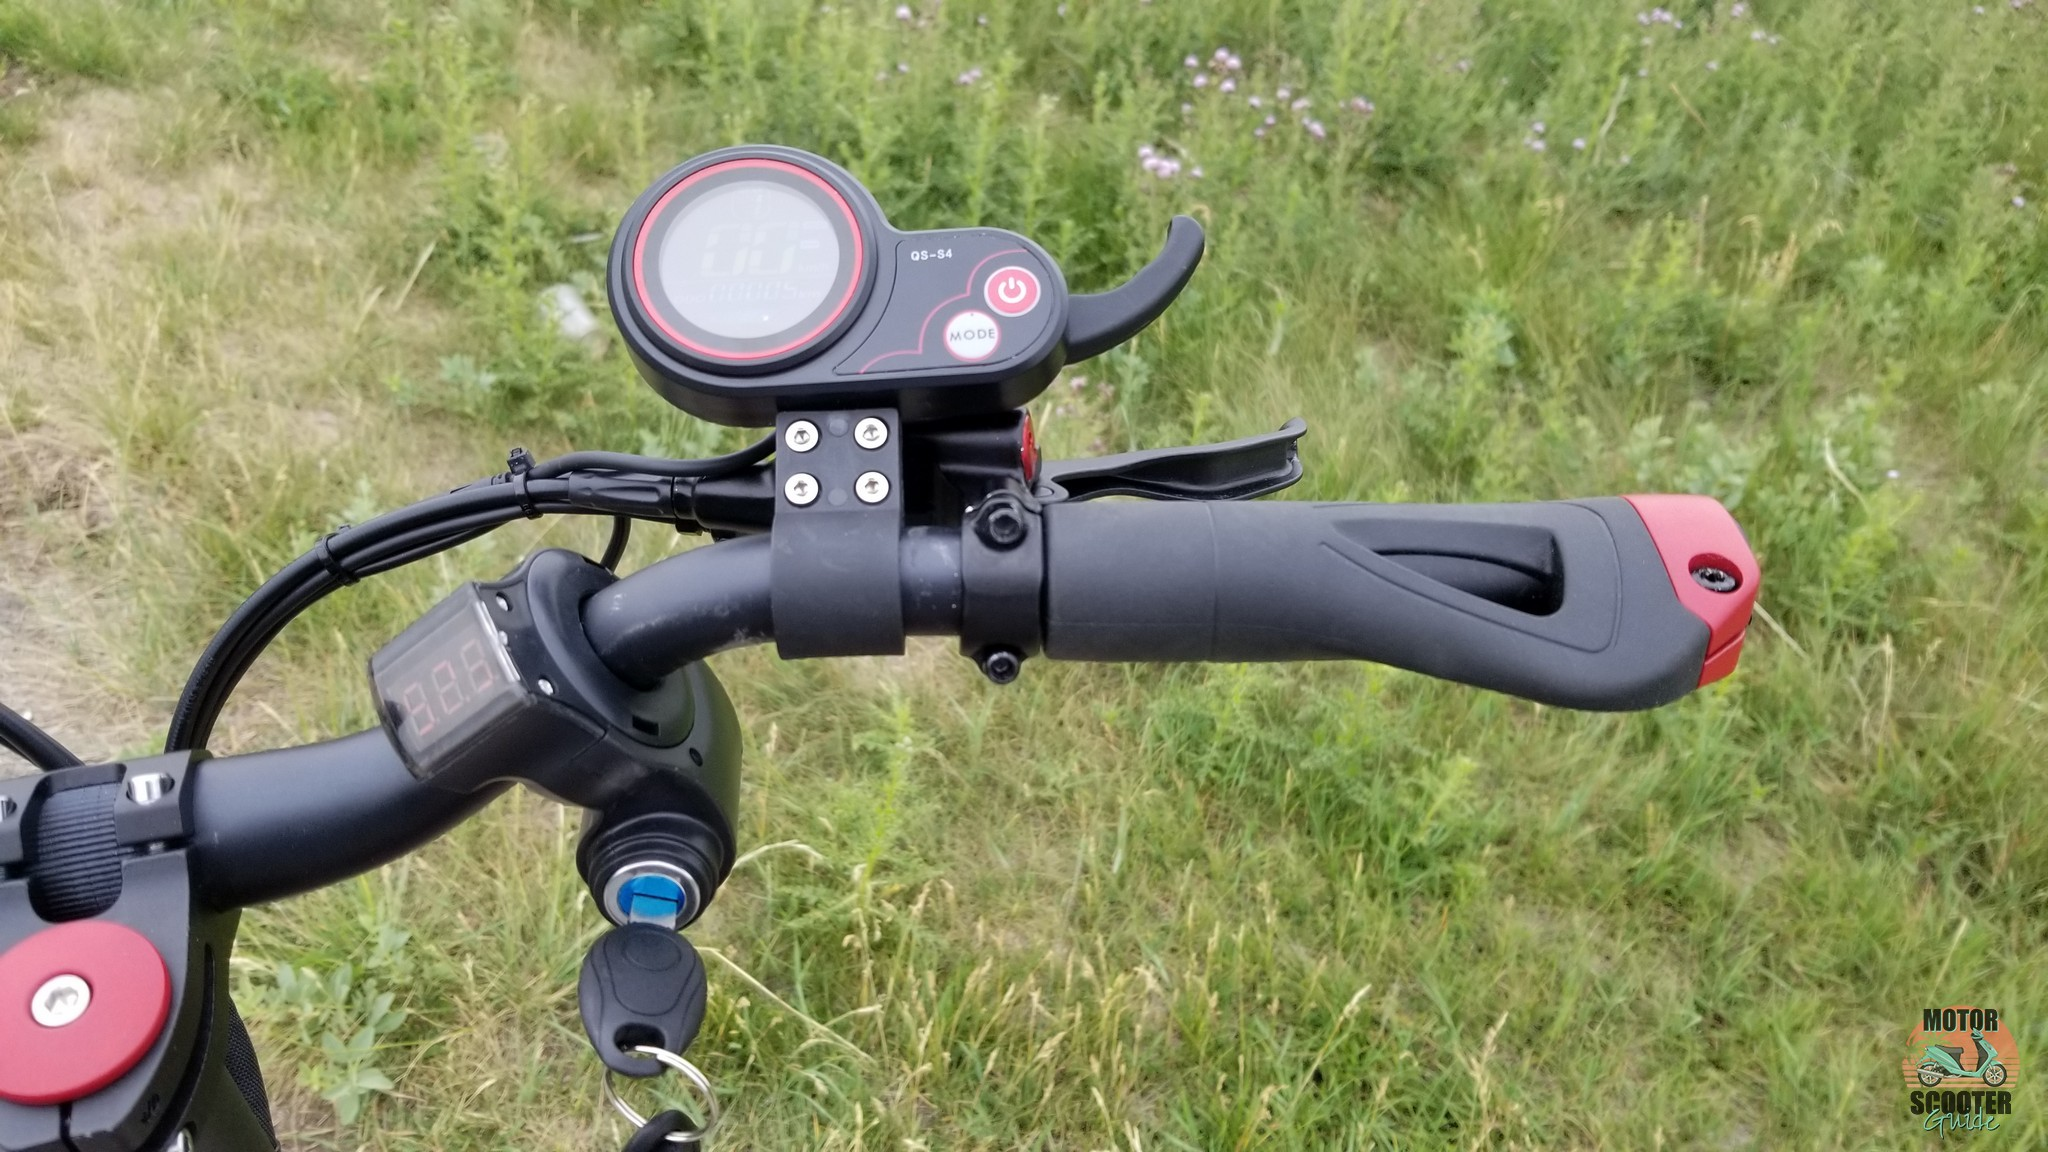 Outdoor view of the LCD display on right side of handlebar